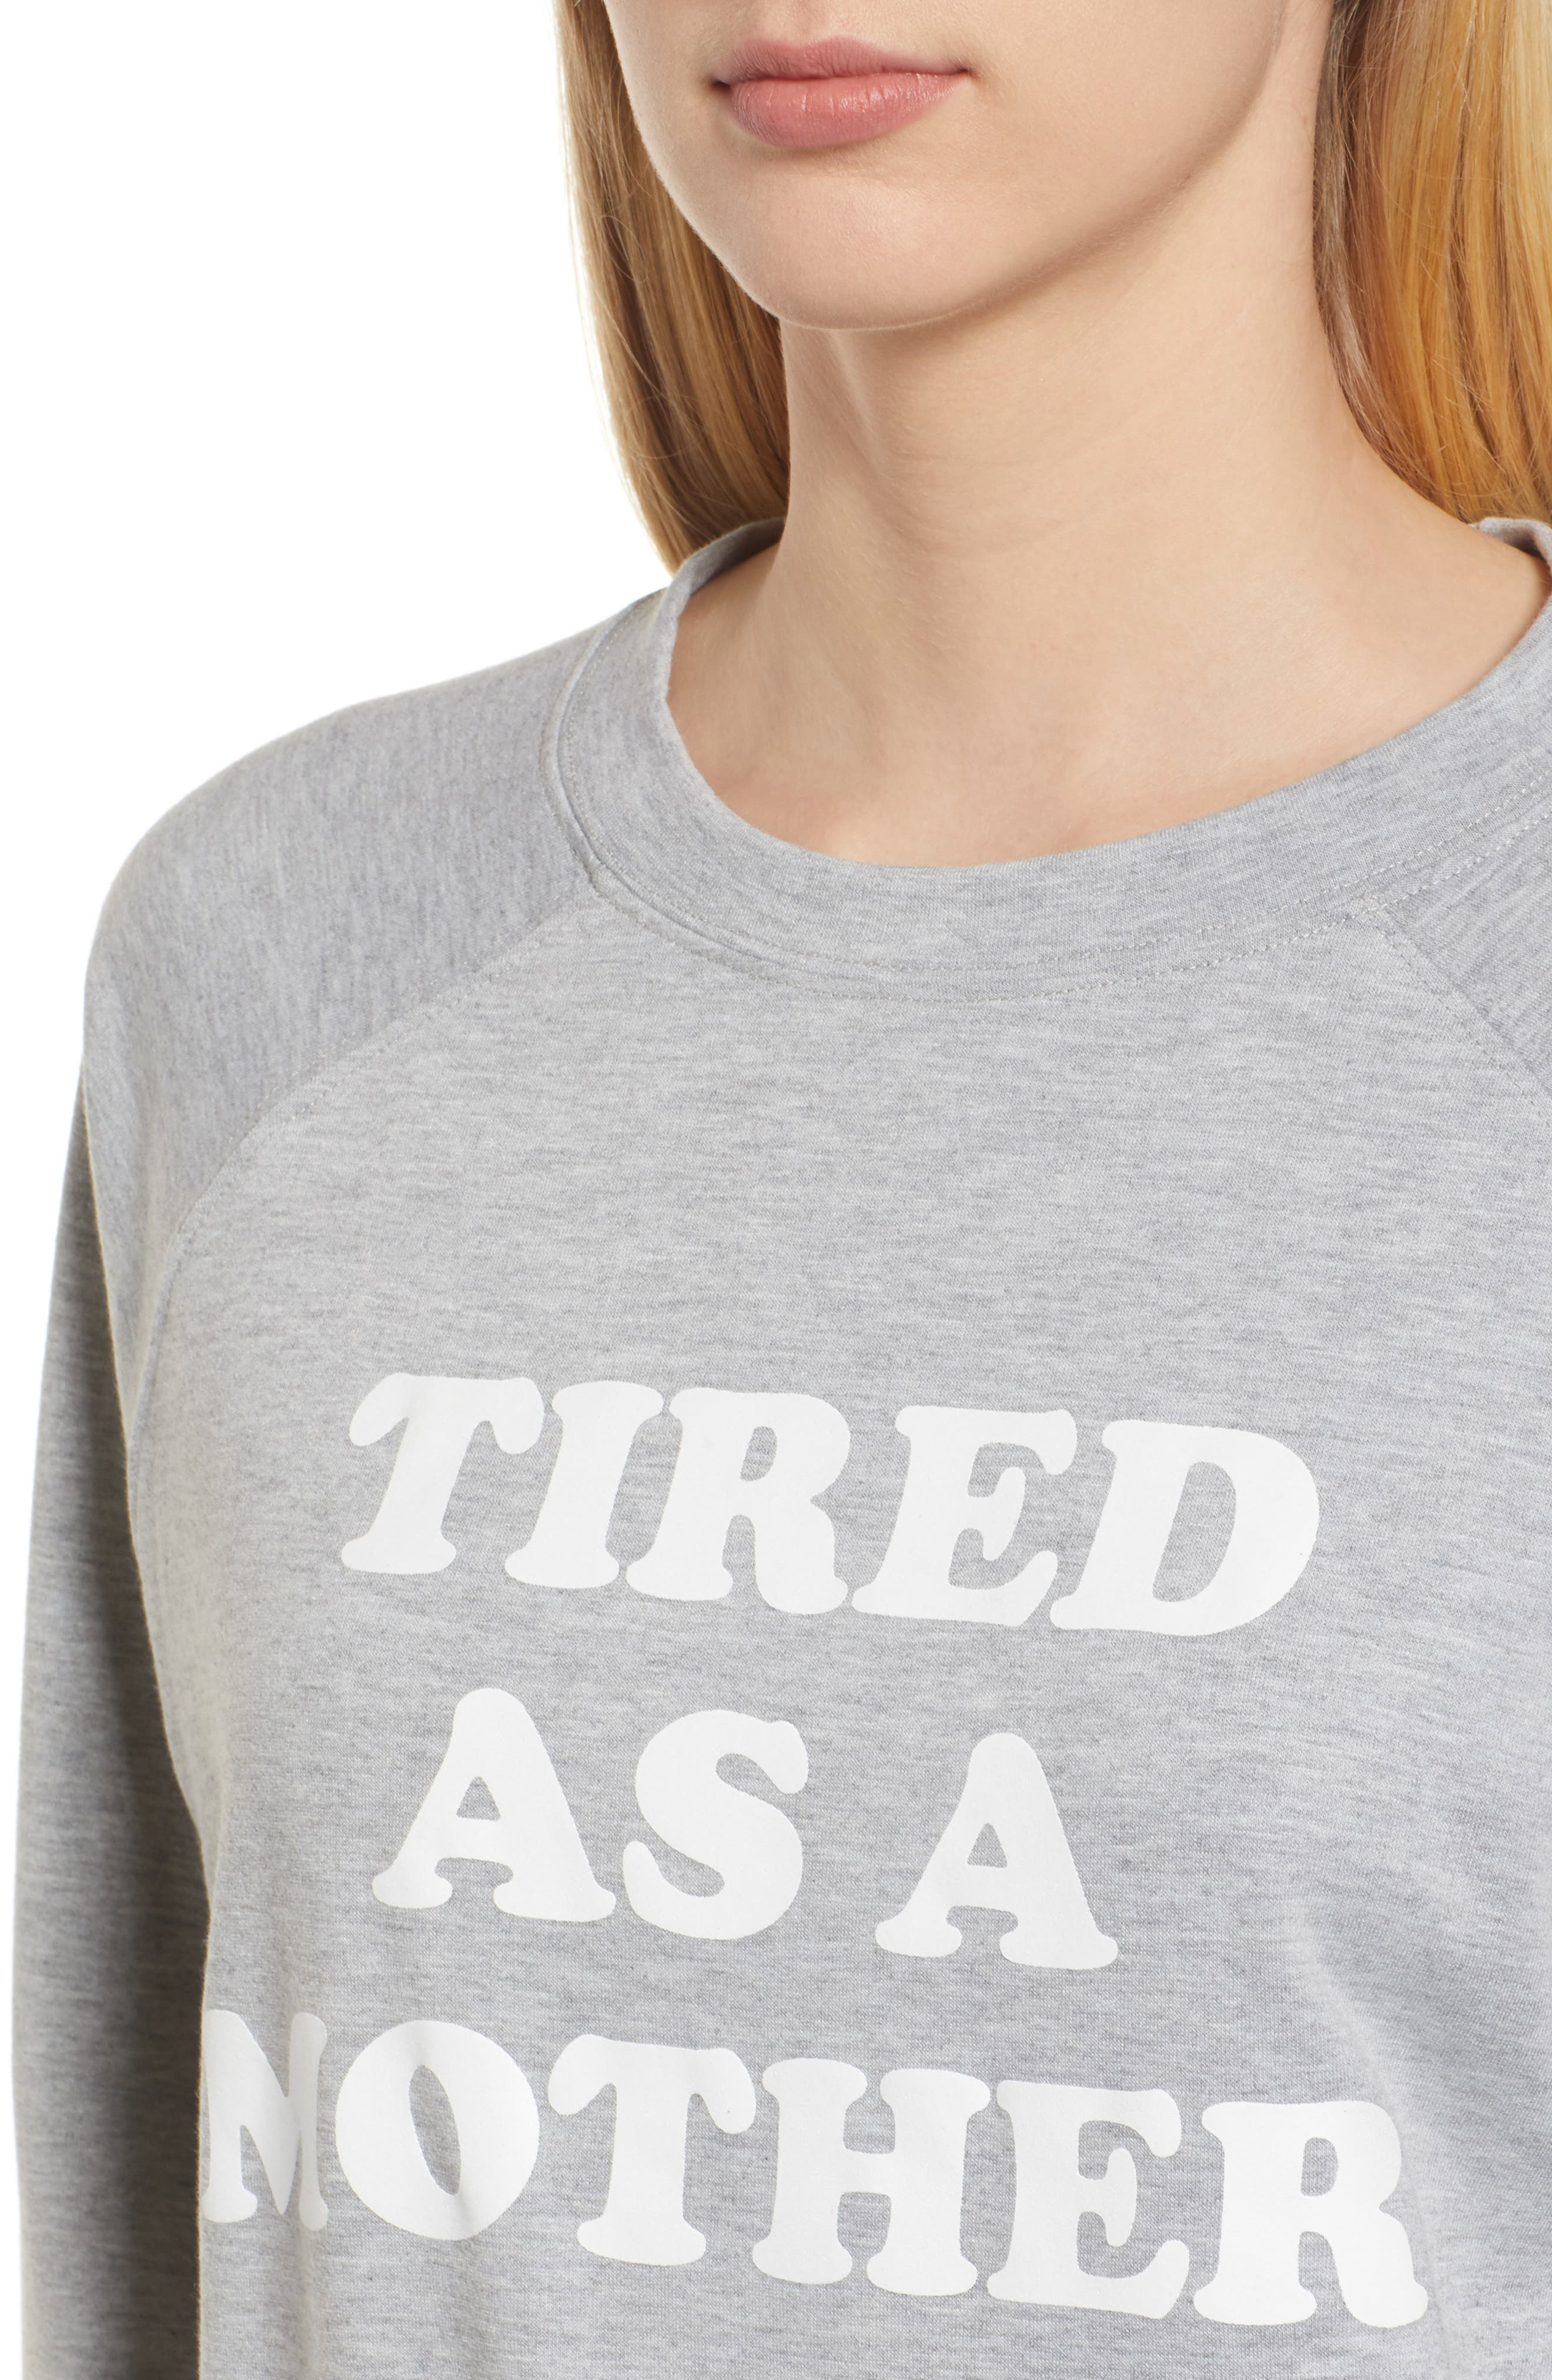 Off-Duty Tired as a Mother Sweatshirt,                             Alternate thumbnail 4, color,